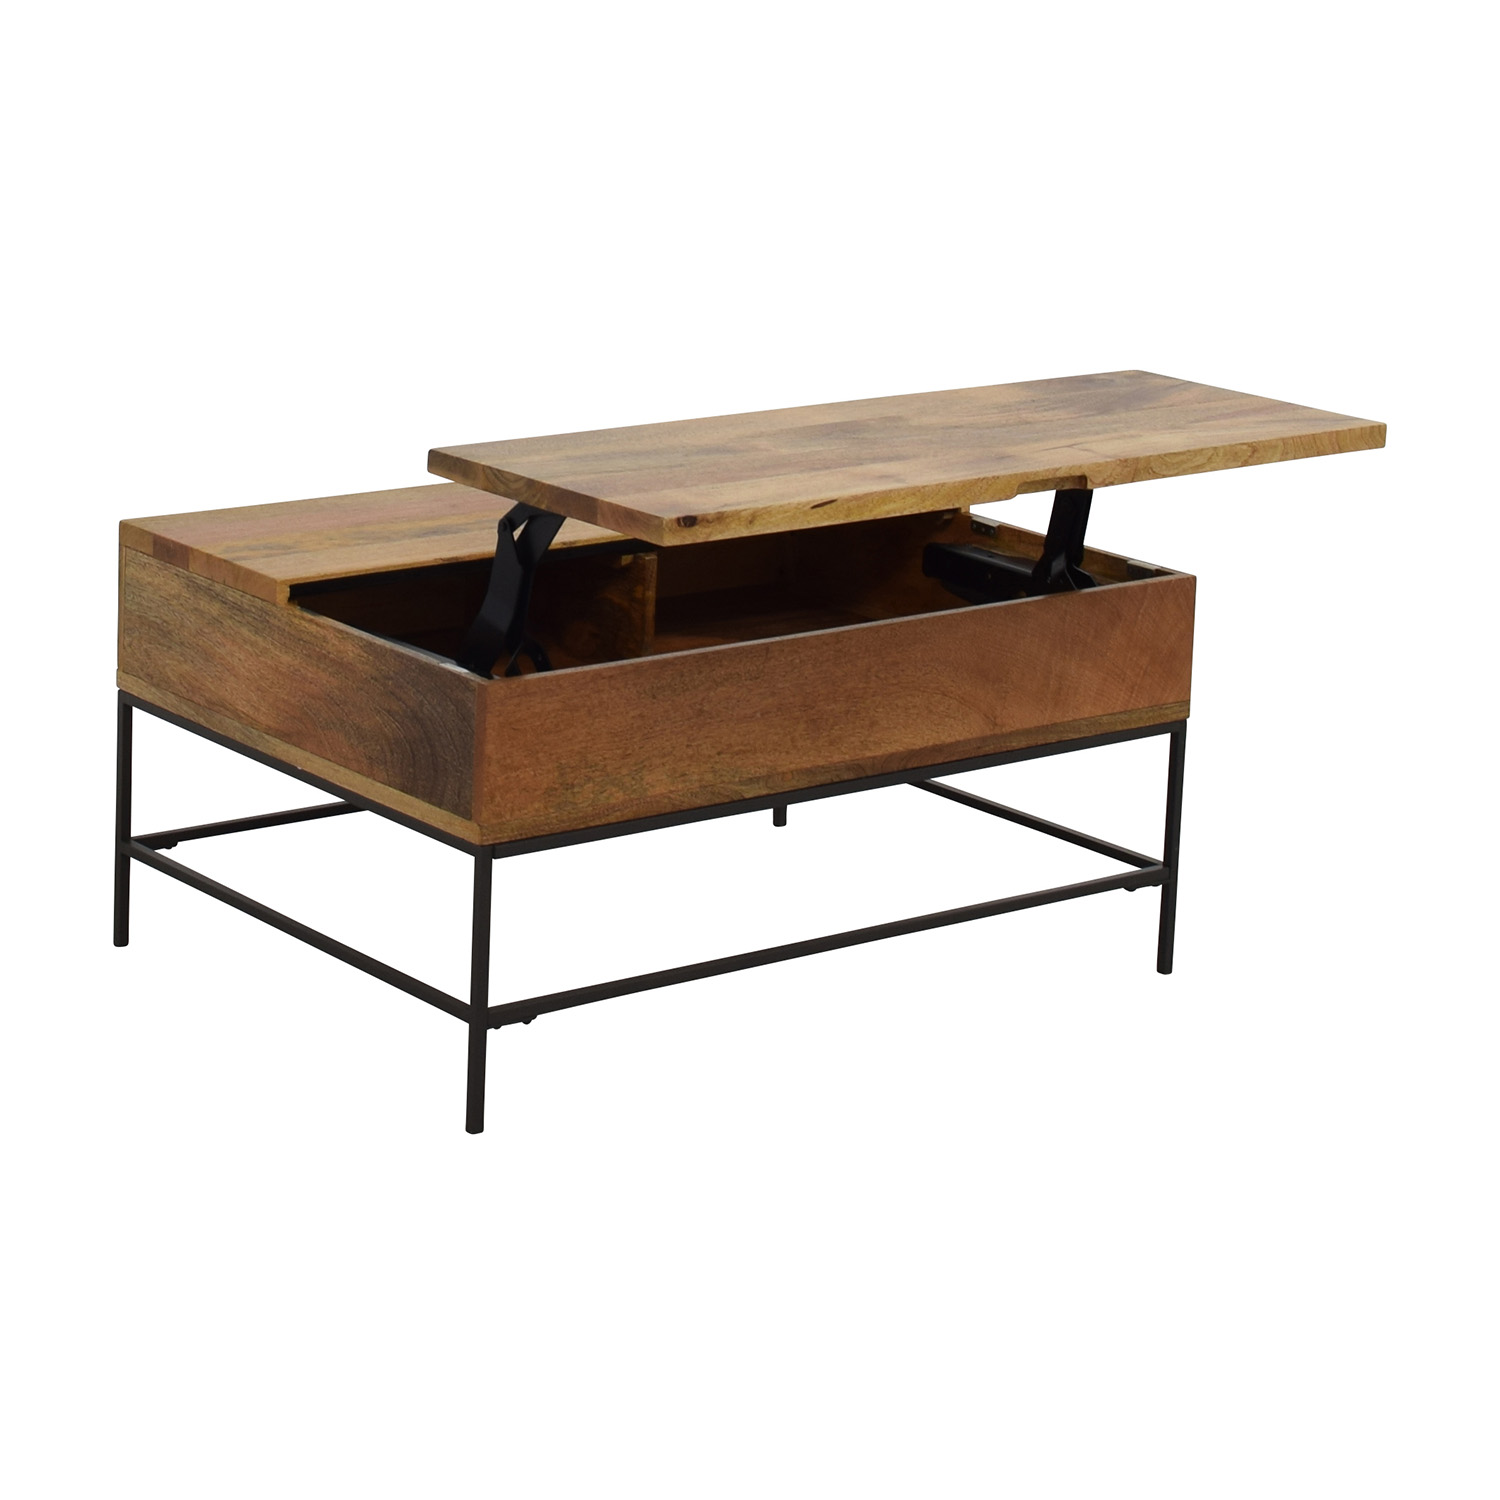 63 Off West Elm West Elm Industrial Storage Coffee Table Tables